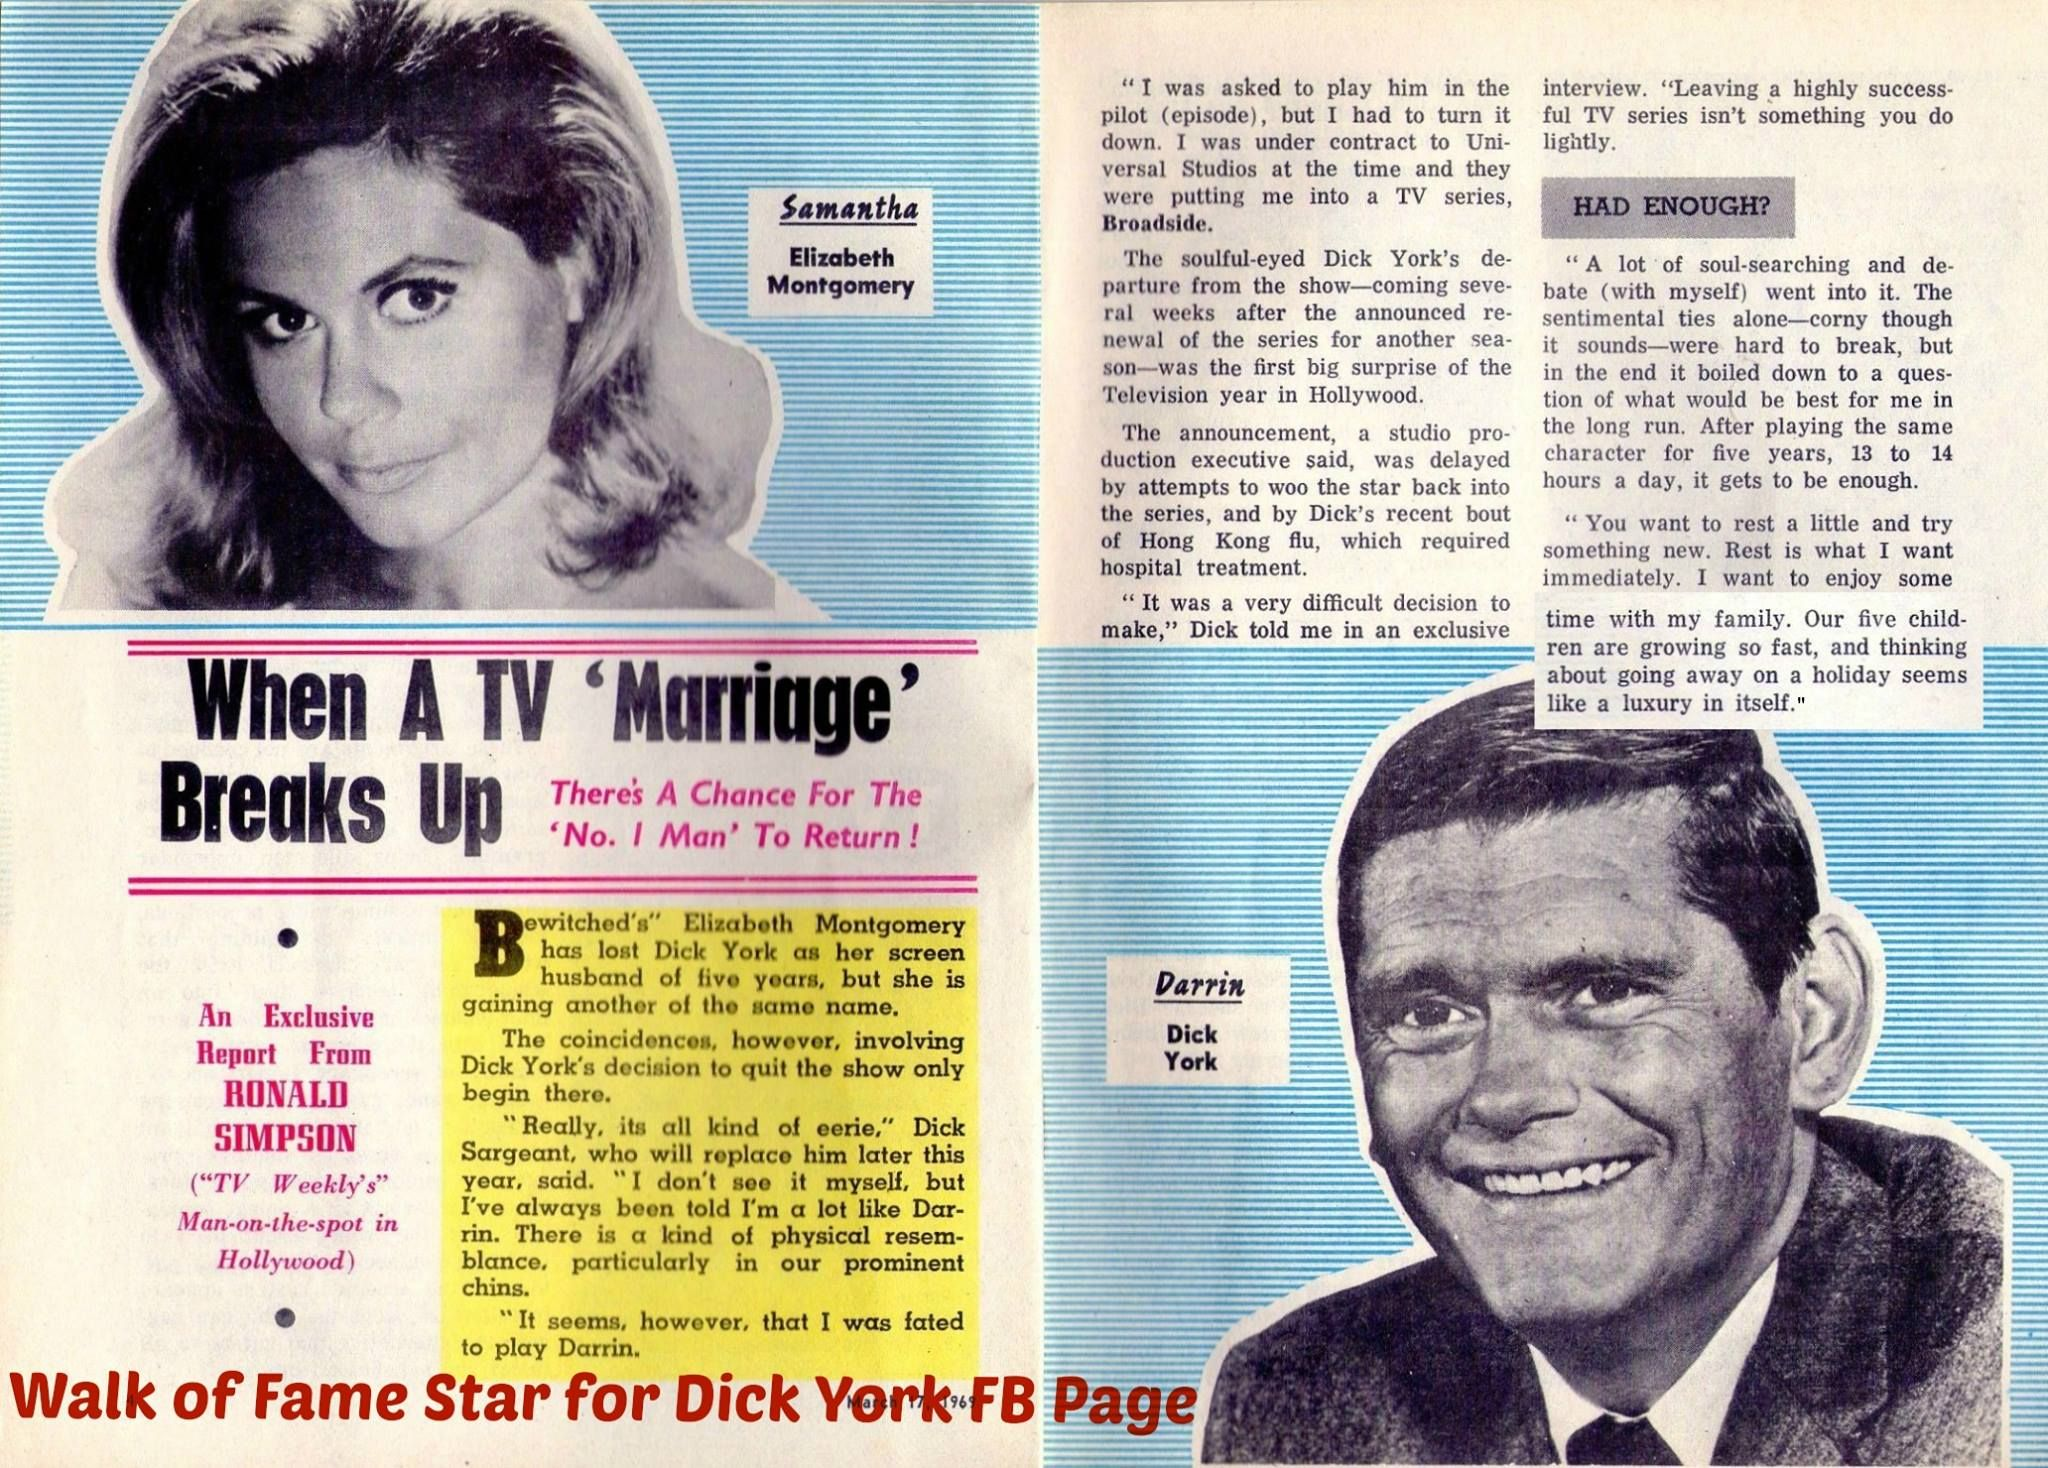 Interview with Dick York about his decision to leave